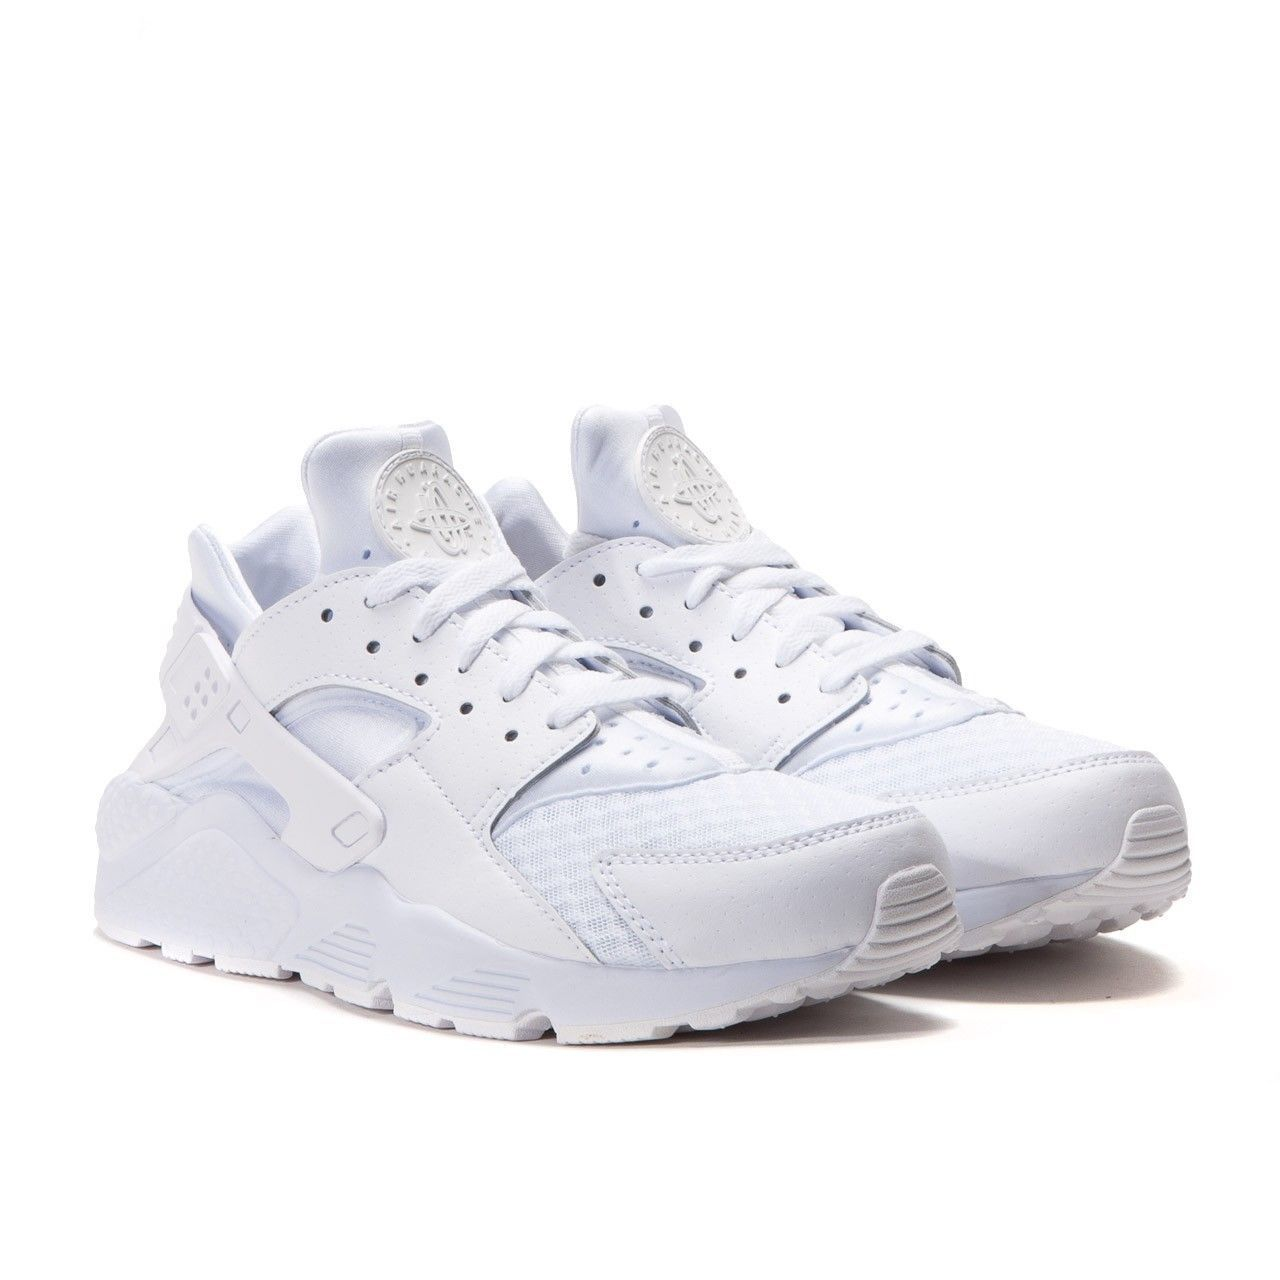 best website 1a736 90f23 NIKE AIR HUARACHE MEN S RUNNING SHOES US SIZE 10 STYLE   318429-111 -  98.99